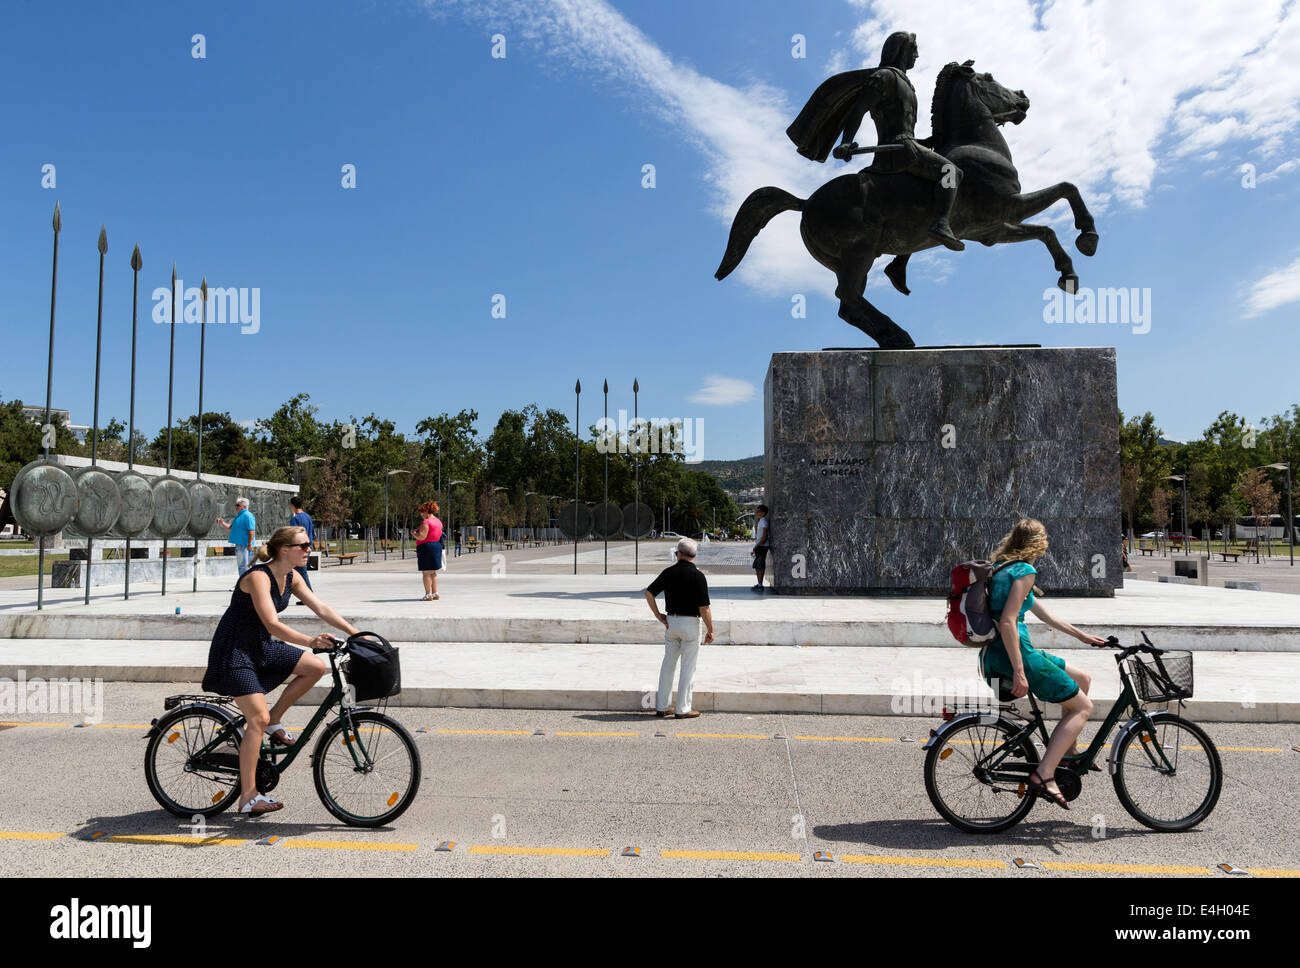 Thessaloniki, Greece. 11th July 2014. Tourists in front of a statue of Alexander the Great and his horse Bucephalus, - Stock Image